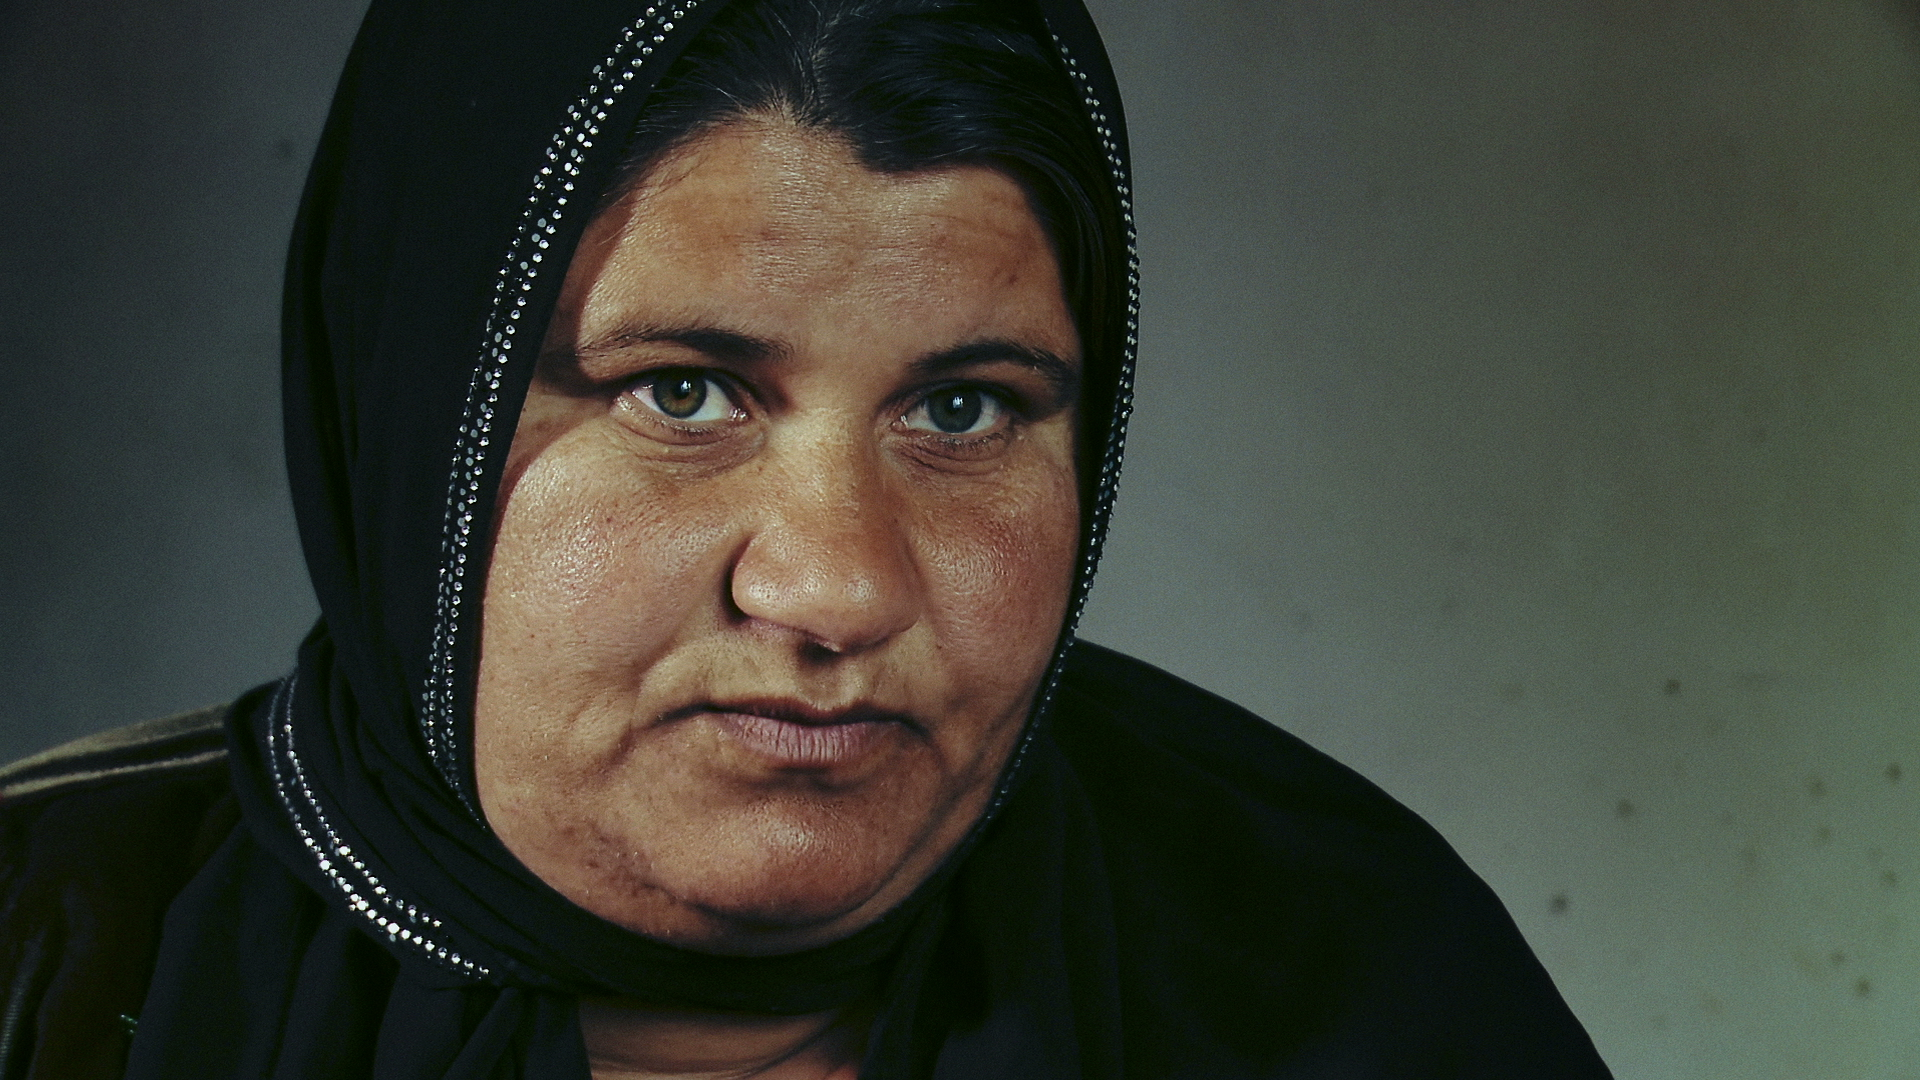 AISHA MAGHDID MAHMOUD witnessed the chemical bombing of Ware village in 1988. Panic-stricken villagers ran to the local spring to wash themselves and their children. However, the water was poisoned and 20 lost their lives. Unaware that Aisha, her brother and her mother had escaped, her father searched desperately for them in the village and never returned.